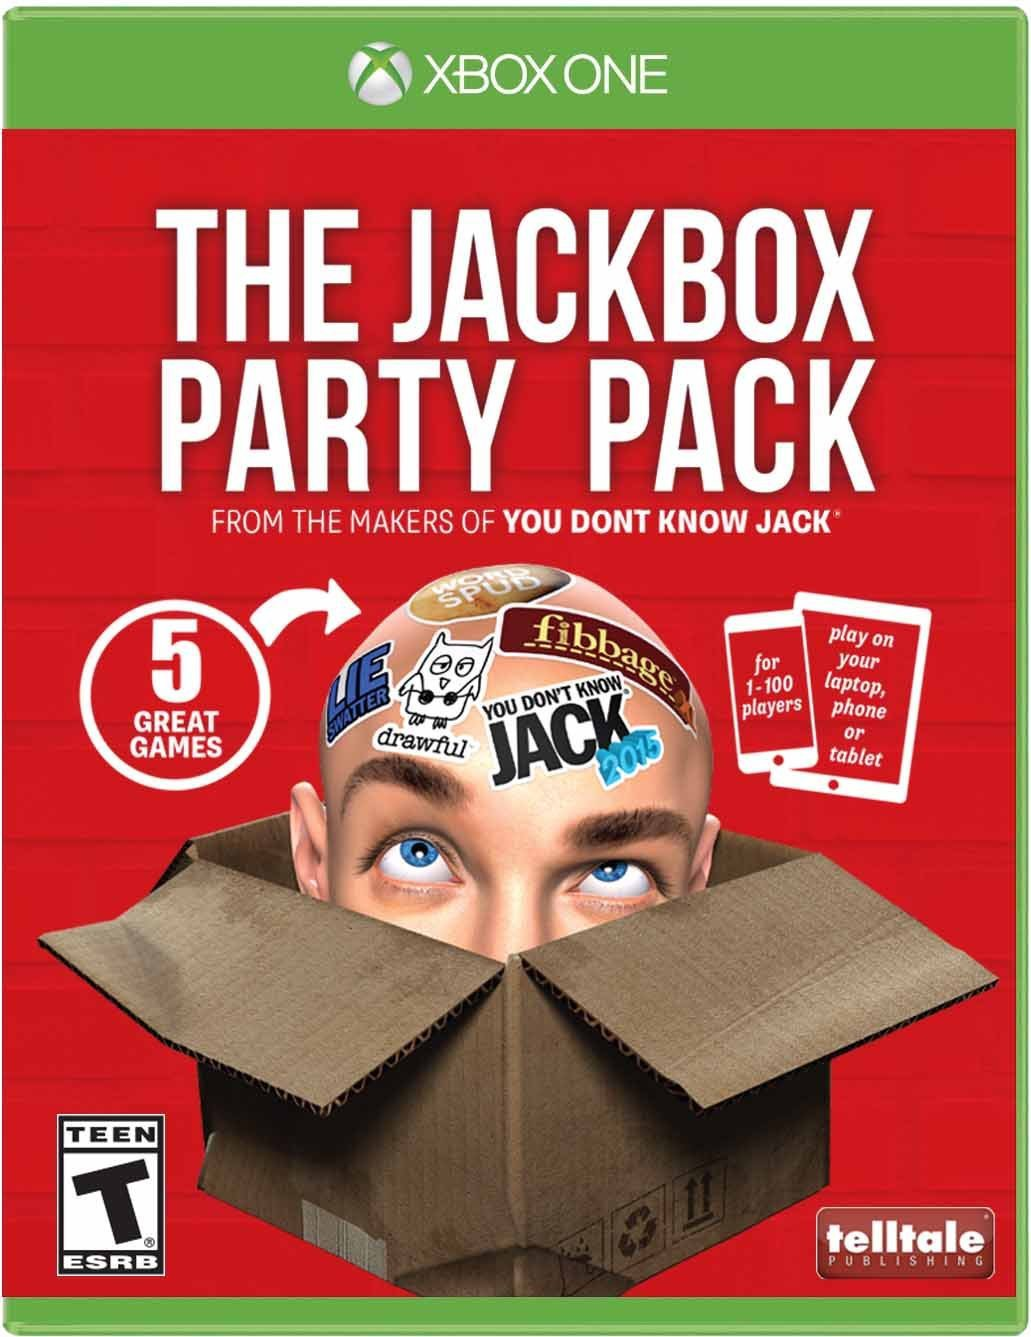 Jackbox Party Pack, The